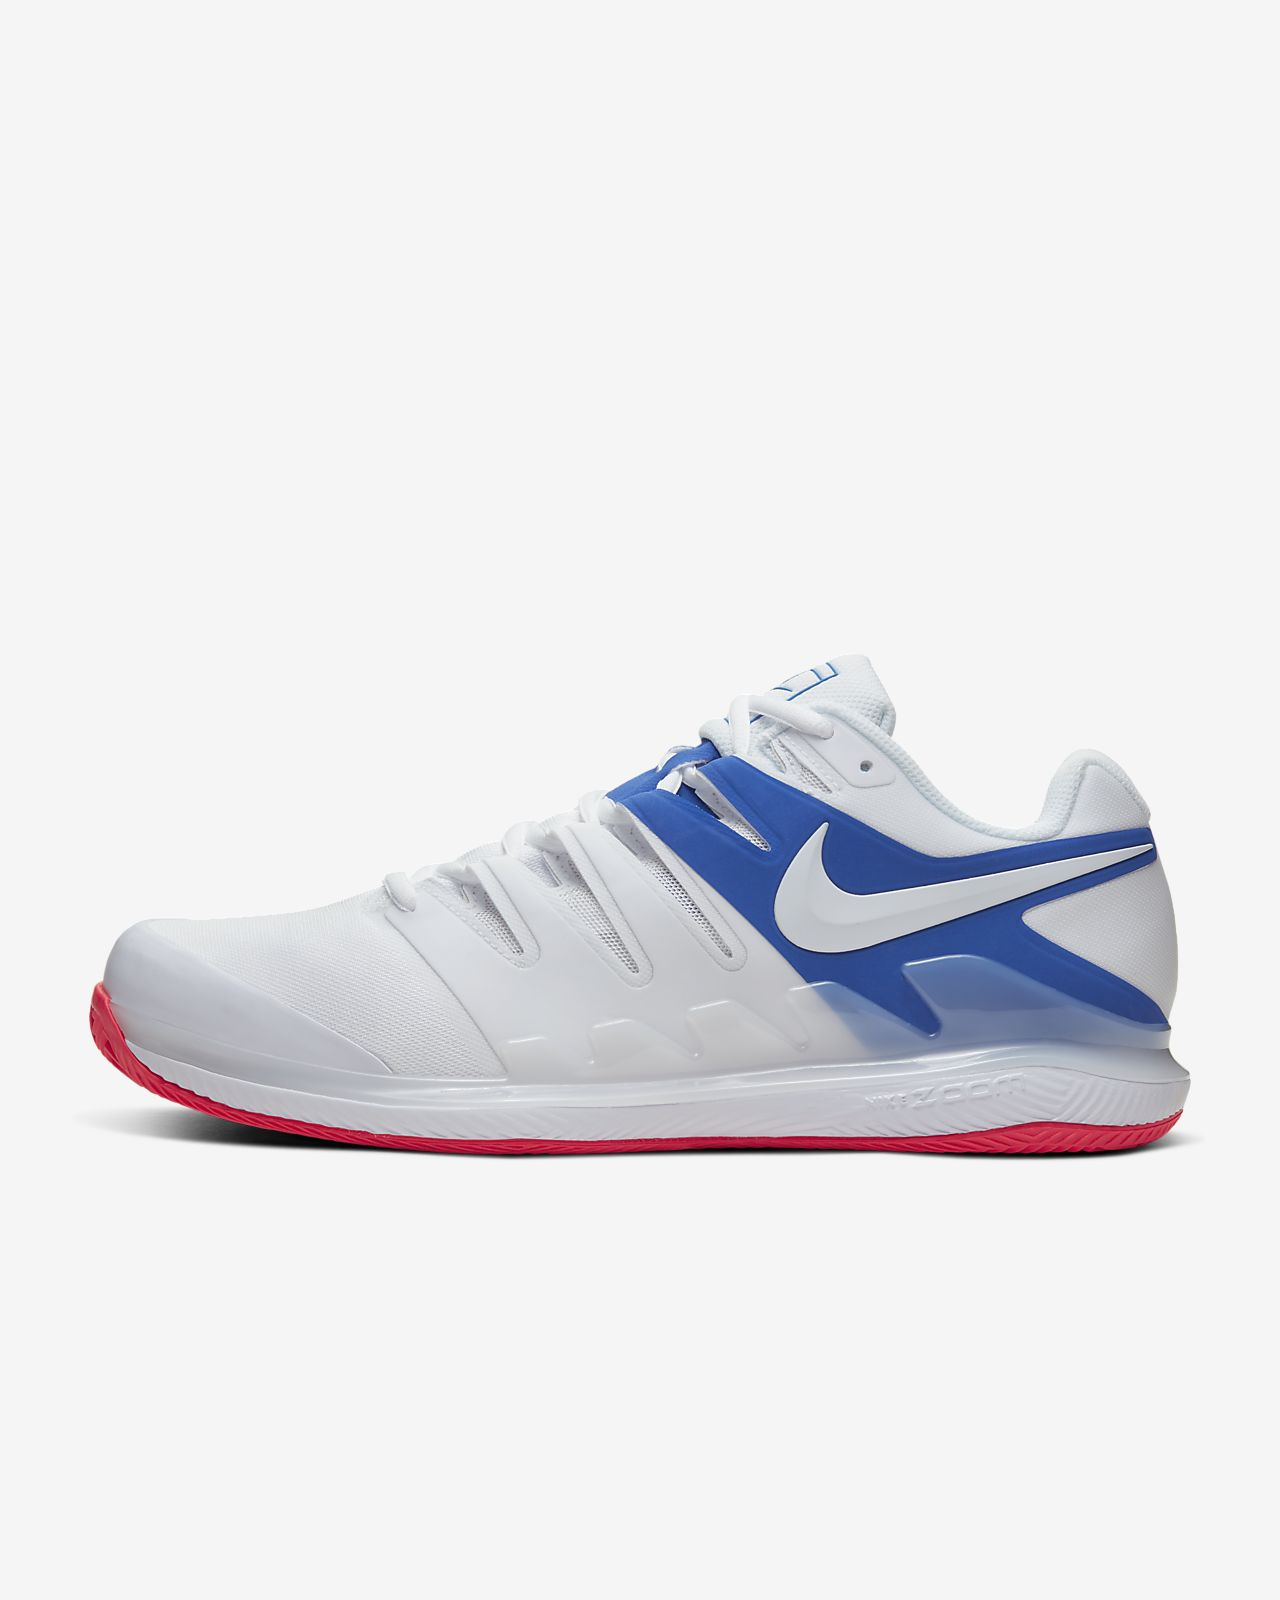 NikeCourt Air Zoom Vapor X Men's Clay Tennis Shoe